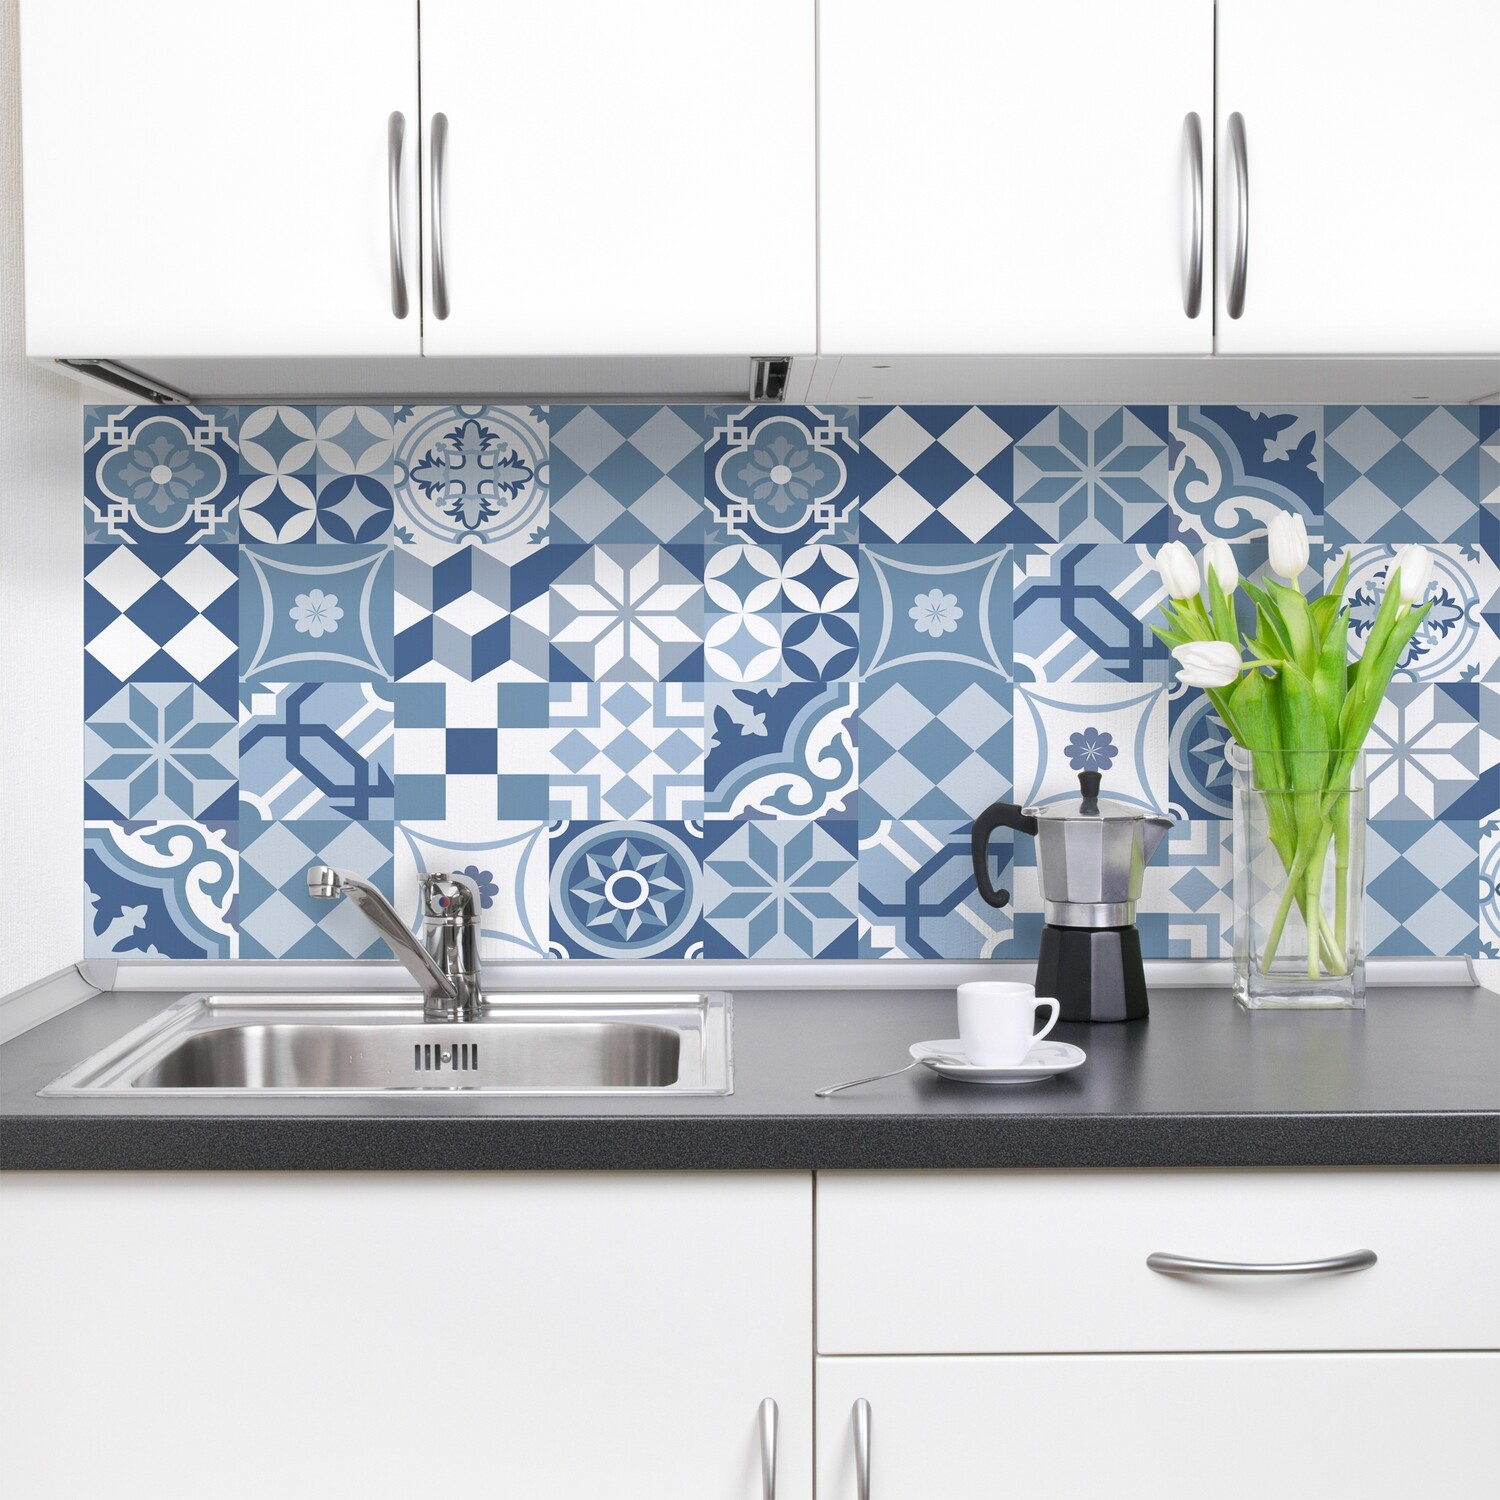 Crearreda 67311- Blue Cementine Self Adhesive Backsplash